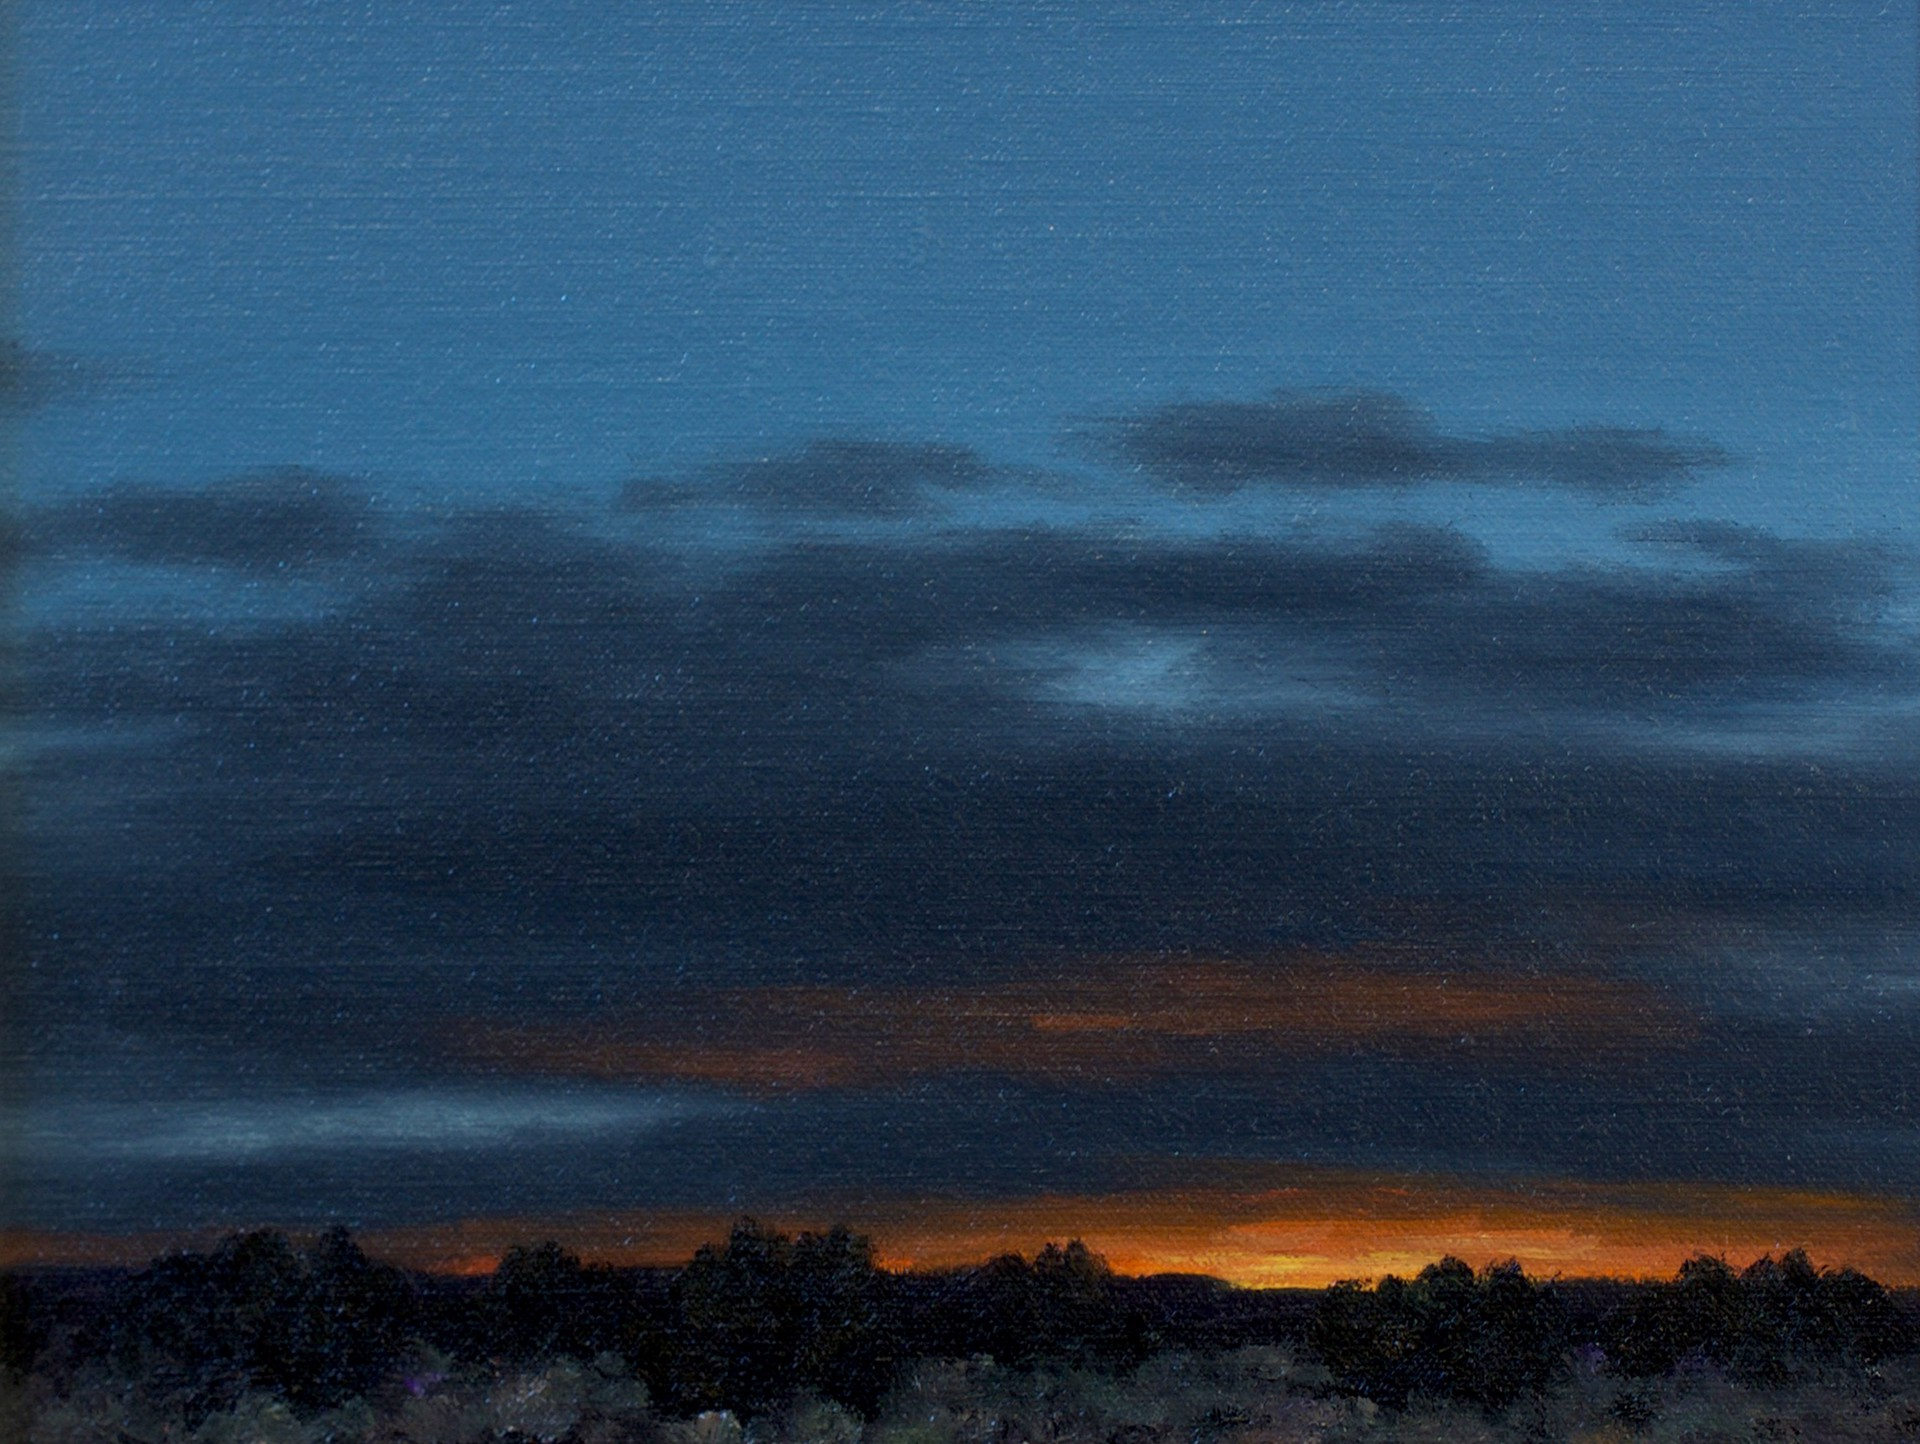 October Sunset by Stephen Day